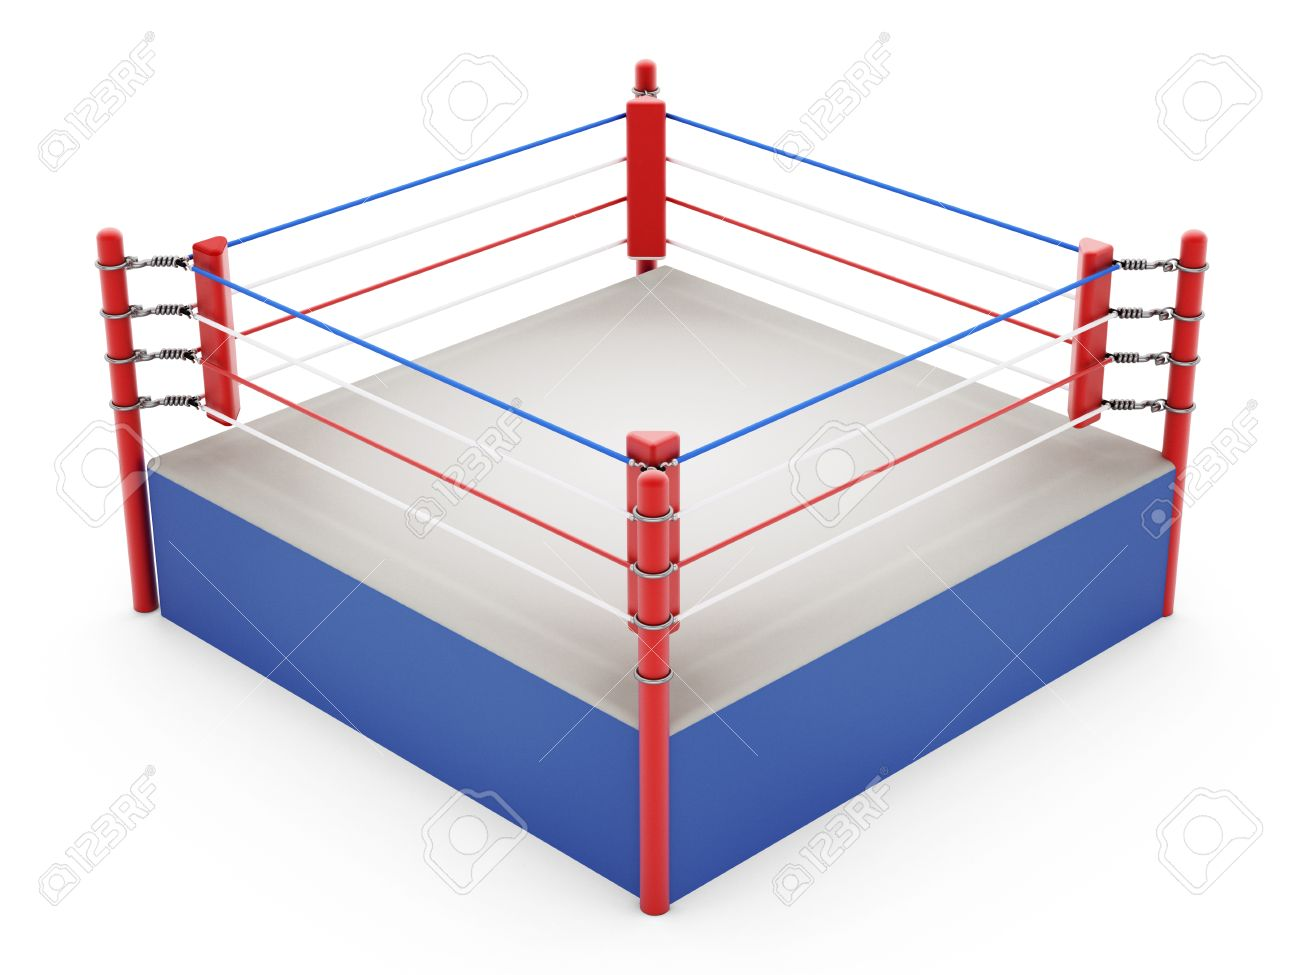 1300x975 Boxing Ring Clipart Amp Boxing Ring Clip Art Images